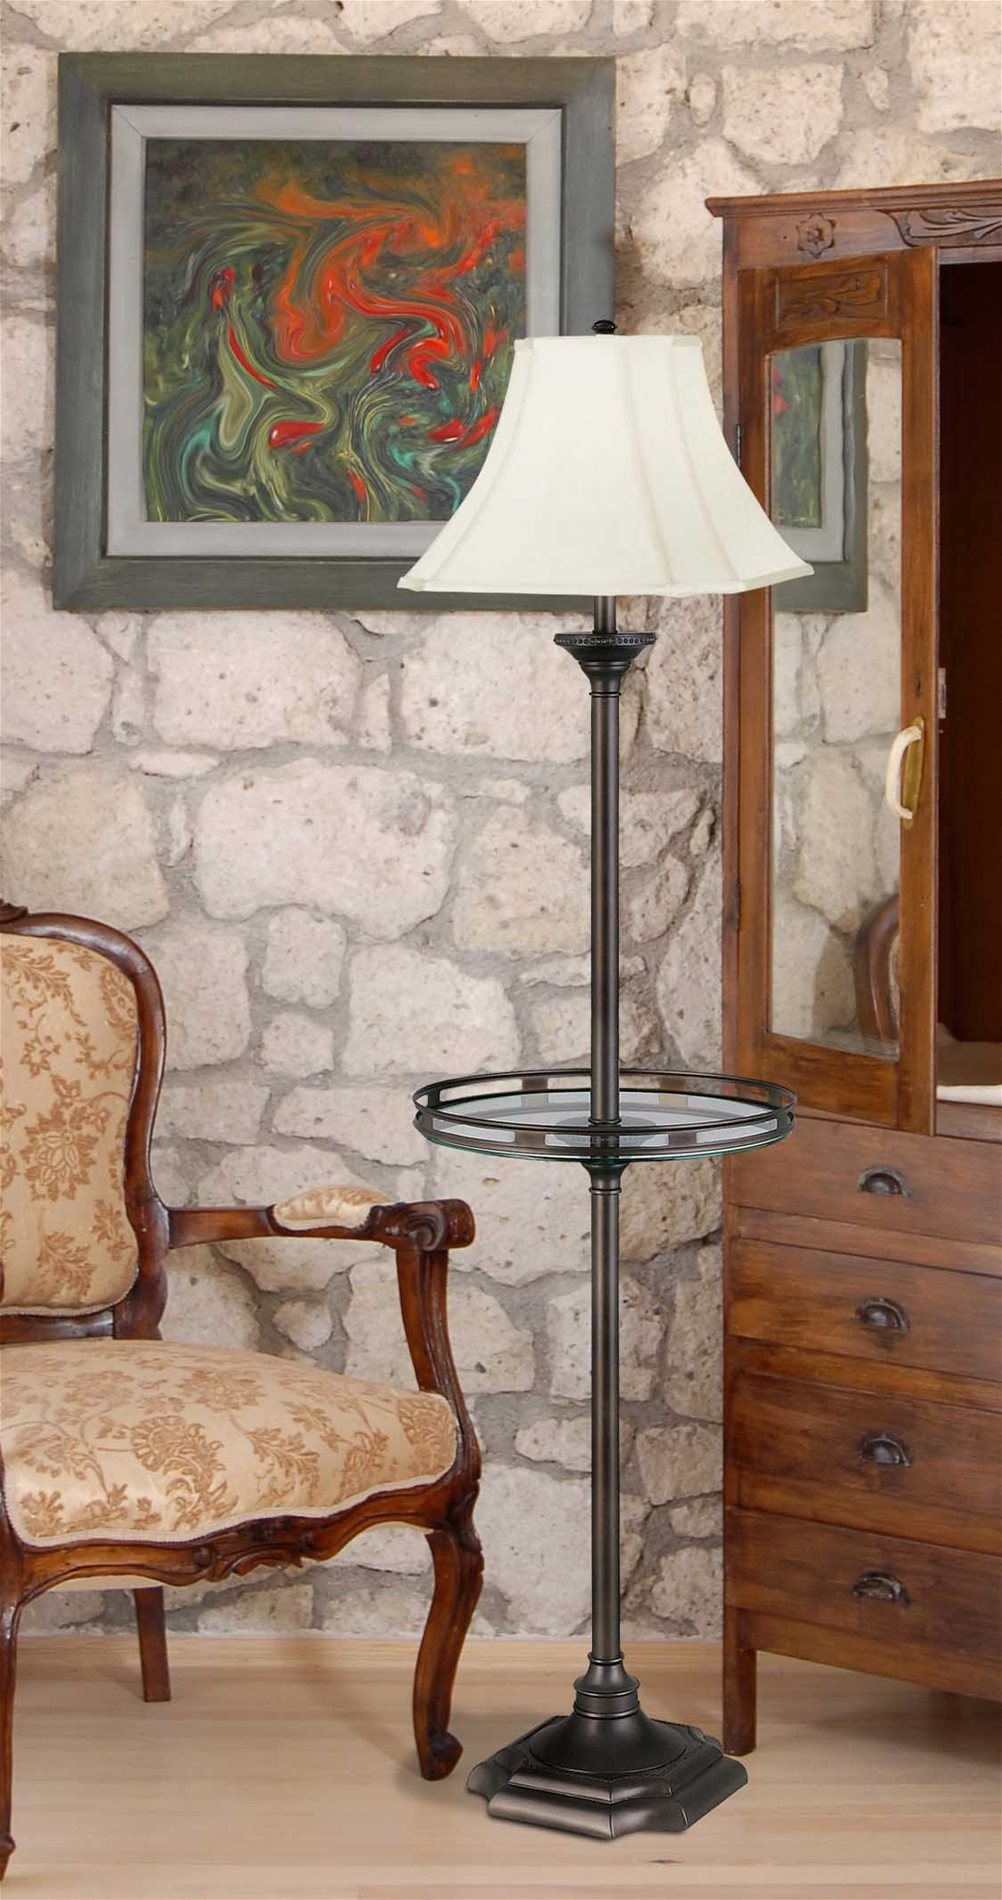 Peachy Wentworth Traditional Floor Lamp W Gallery Tray Theyellowbook Wood Chair Design Ideas Theyellowbookinfo